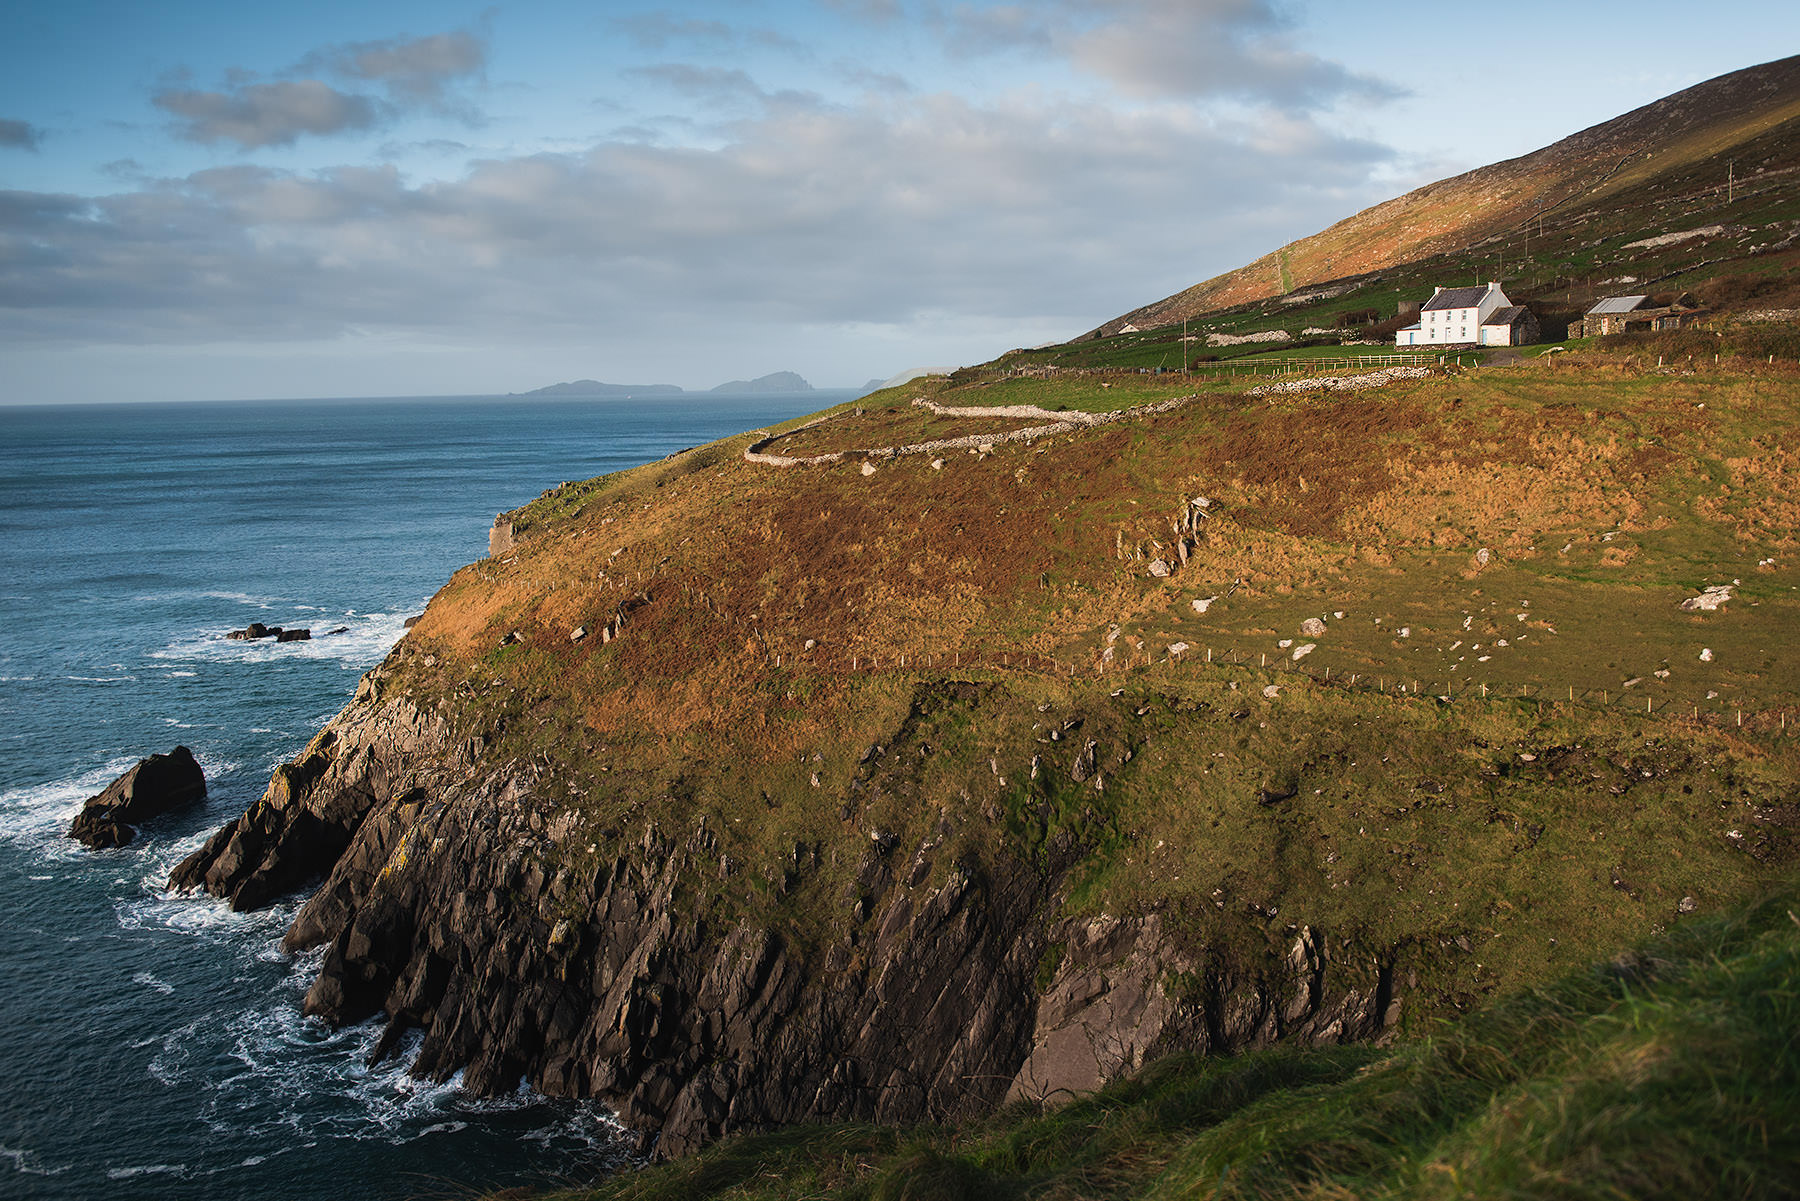 11-travel-ireland-dingle-cliff-ring-of-kerry.jpg